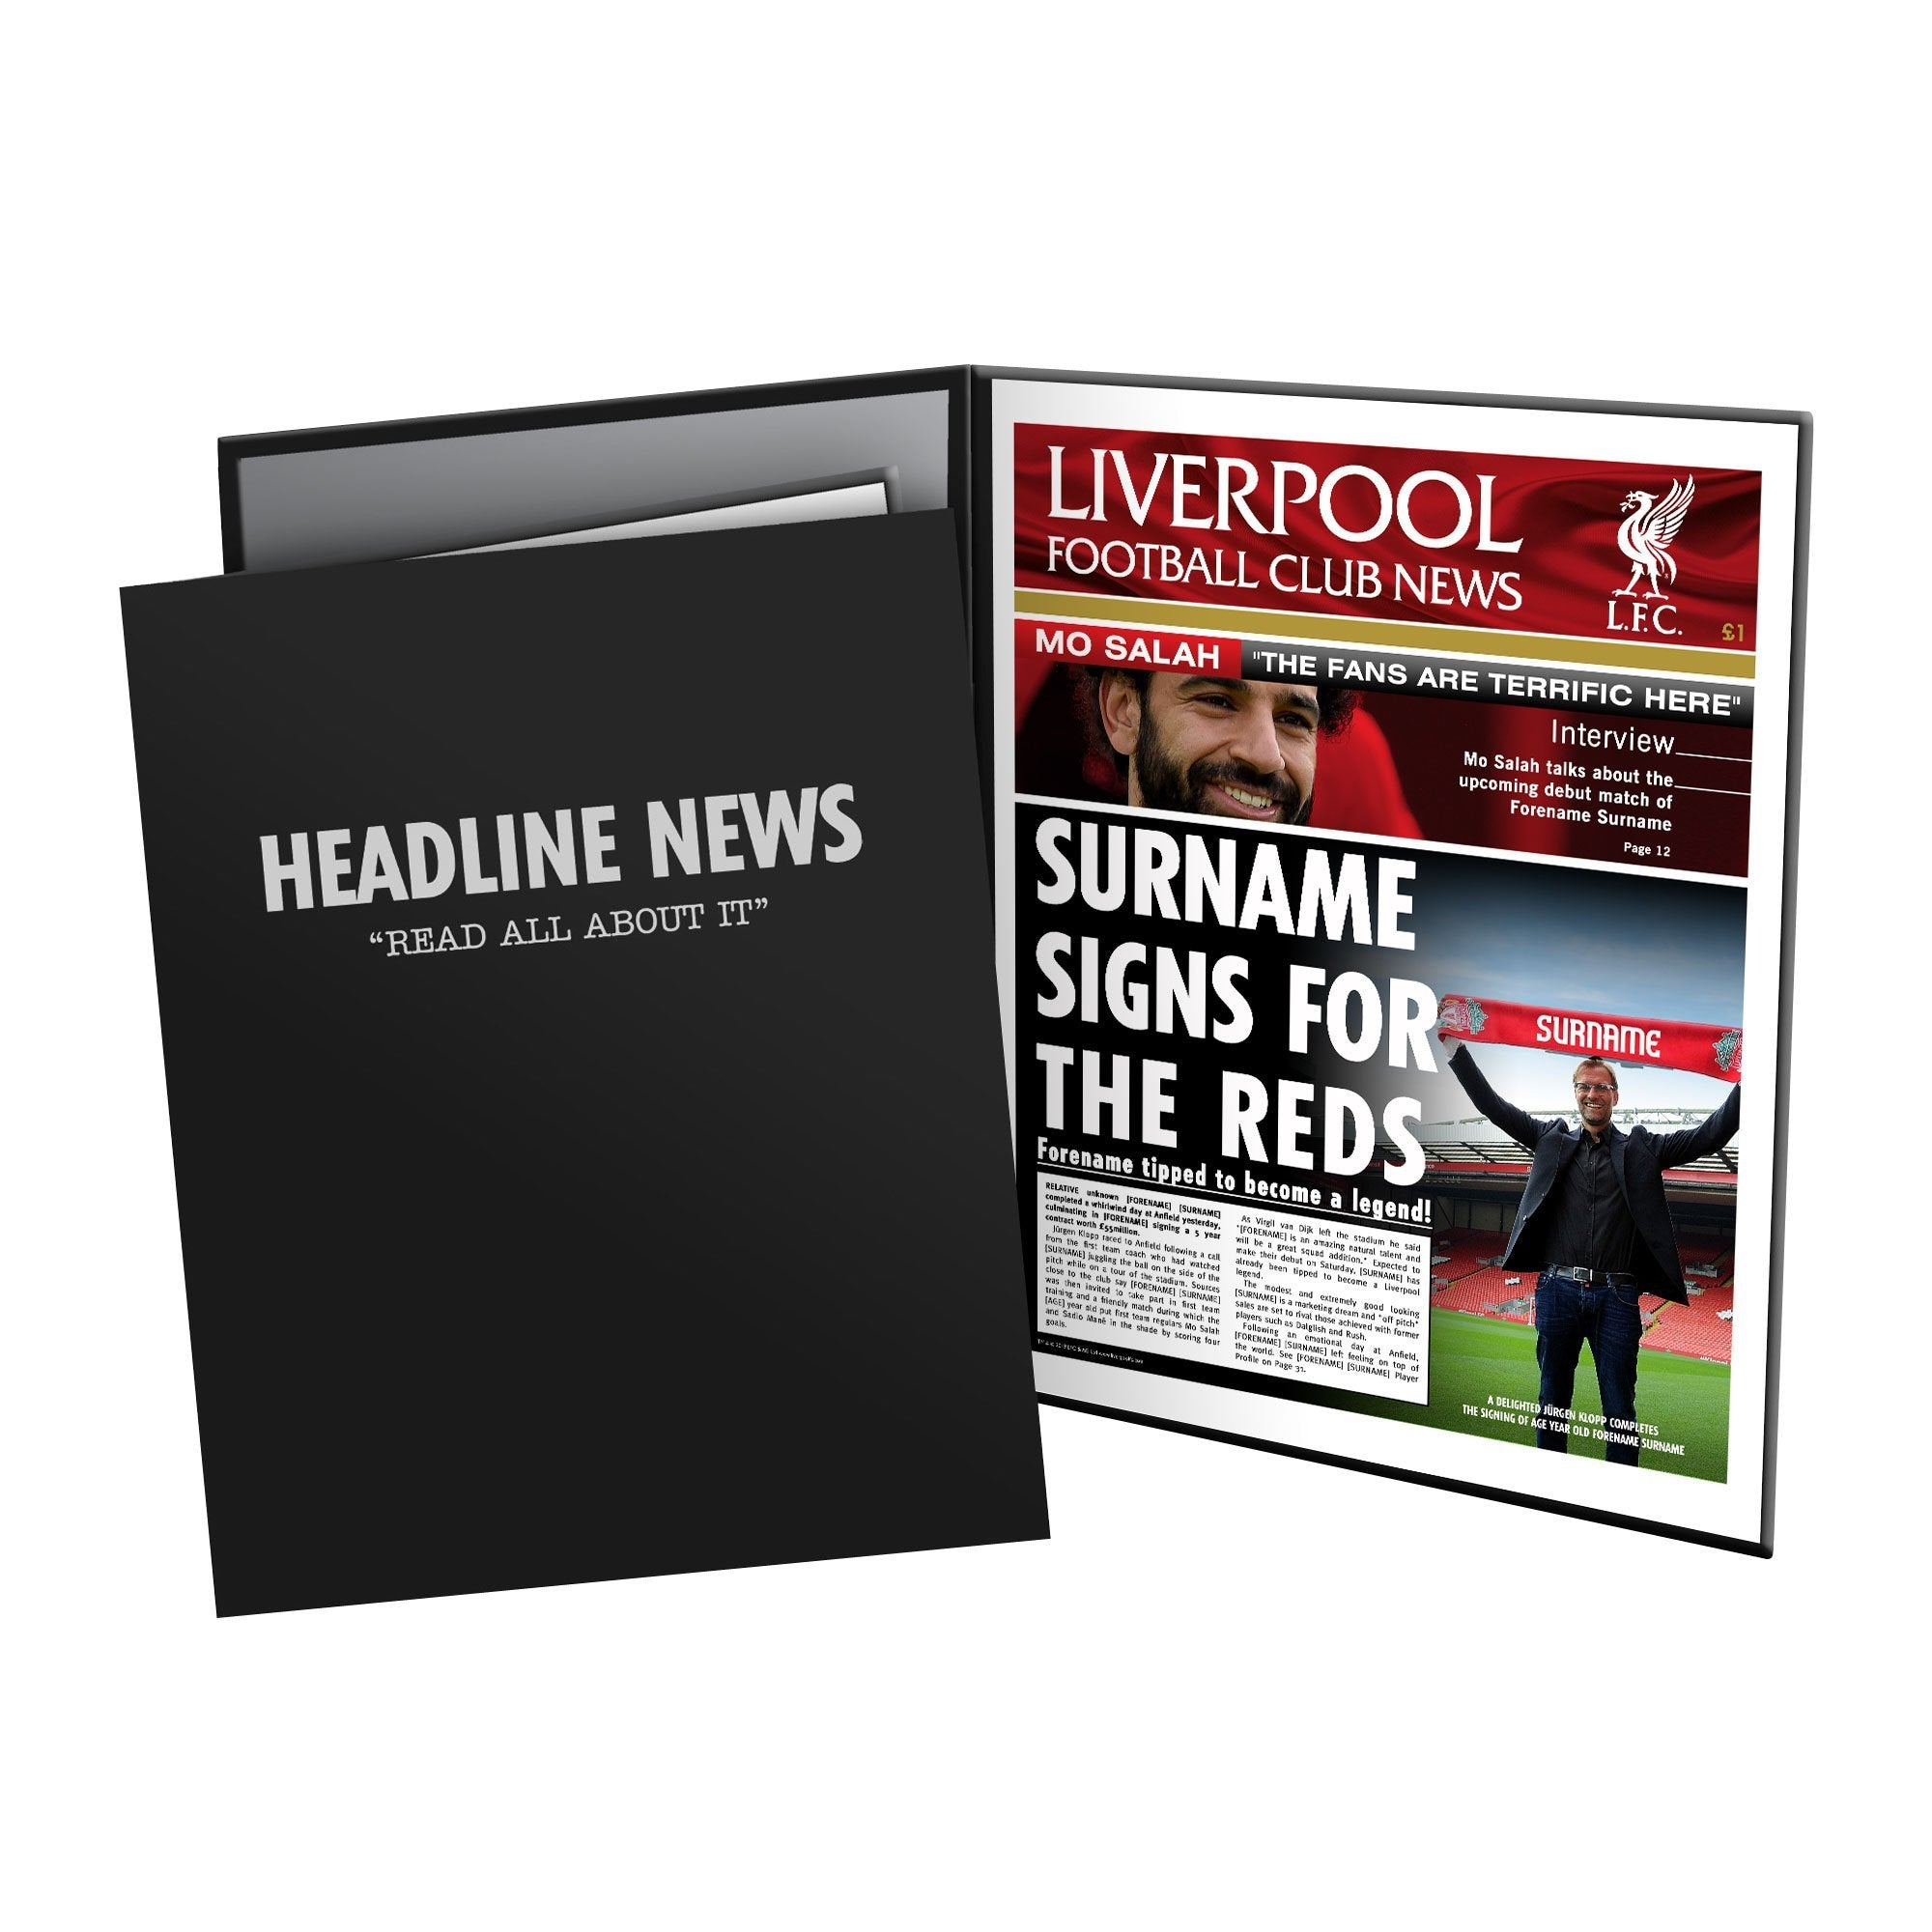 Personalised Liverpool FC News Page In Presentation Folder, Football Fan Accessories by Glamorous Gifts